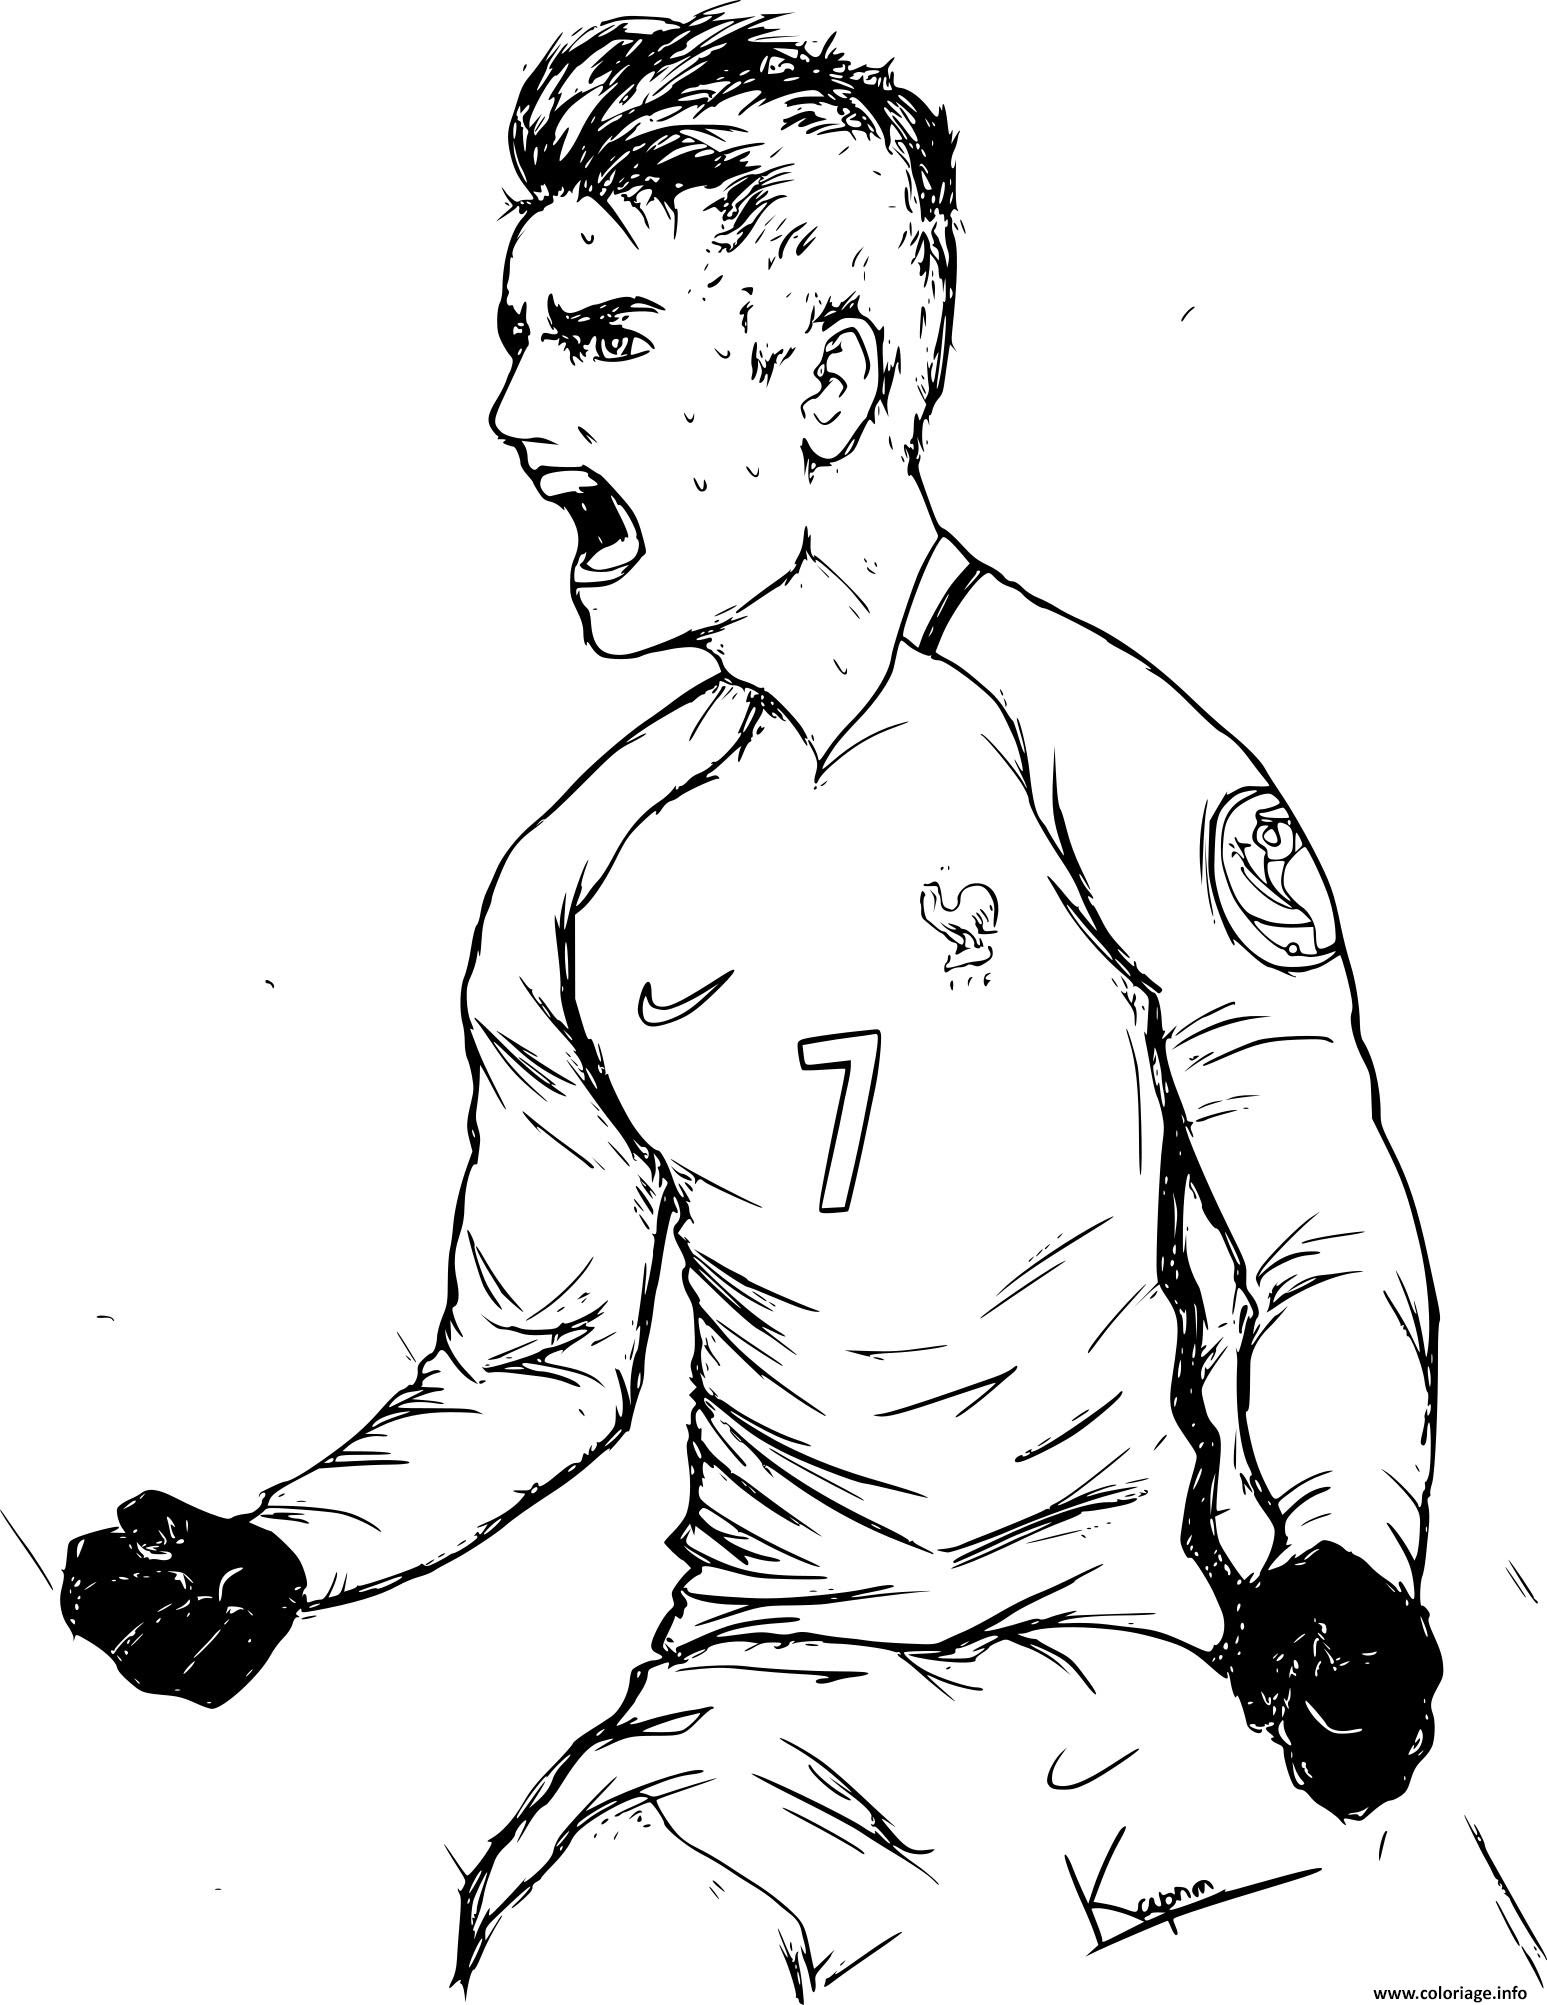 Coloriage à Imprimer Football